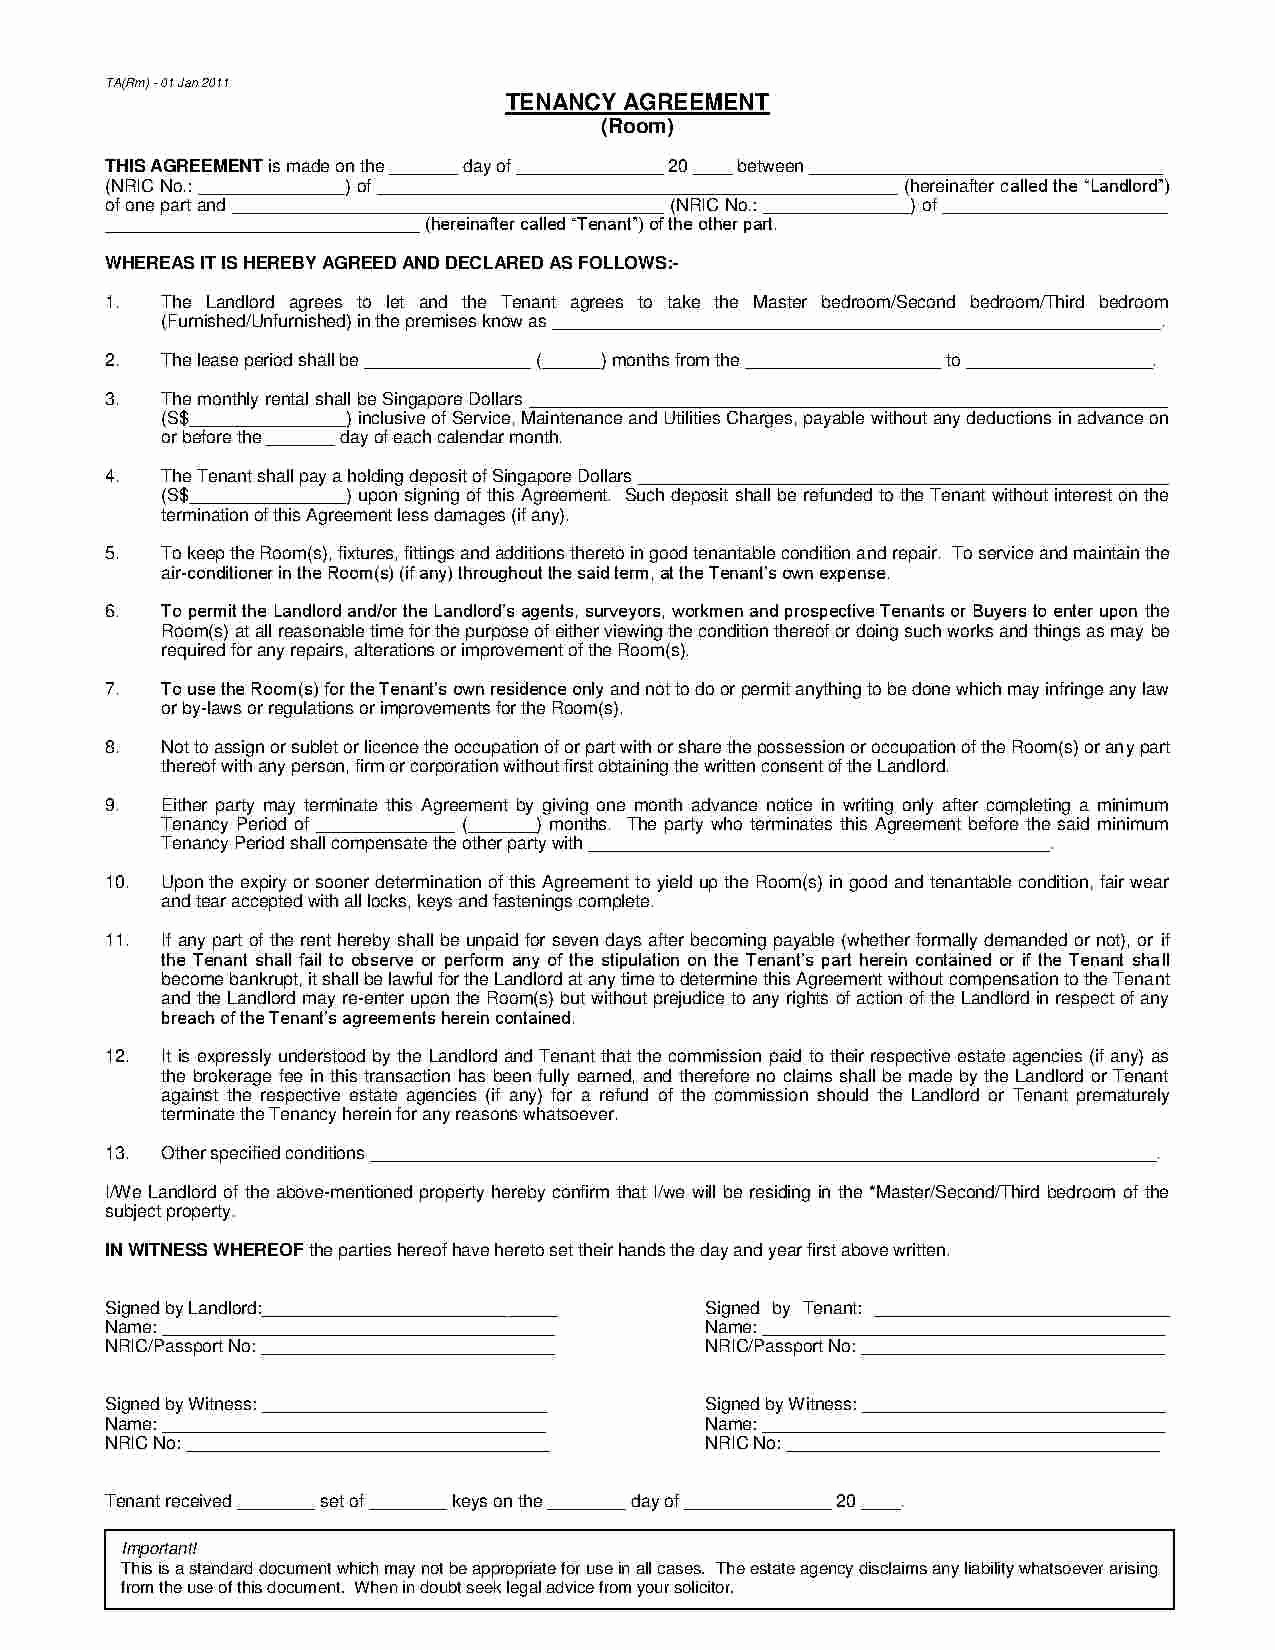 Free Room Rental Agreement Template Unique Download Room Rental Agreement Style 1 Template for Free